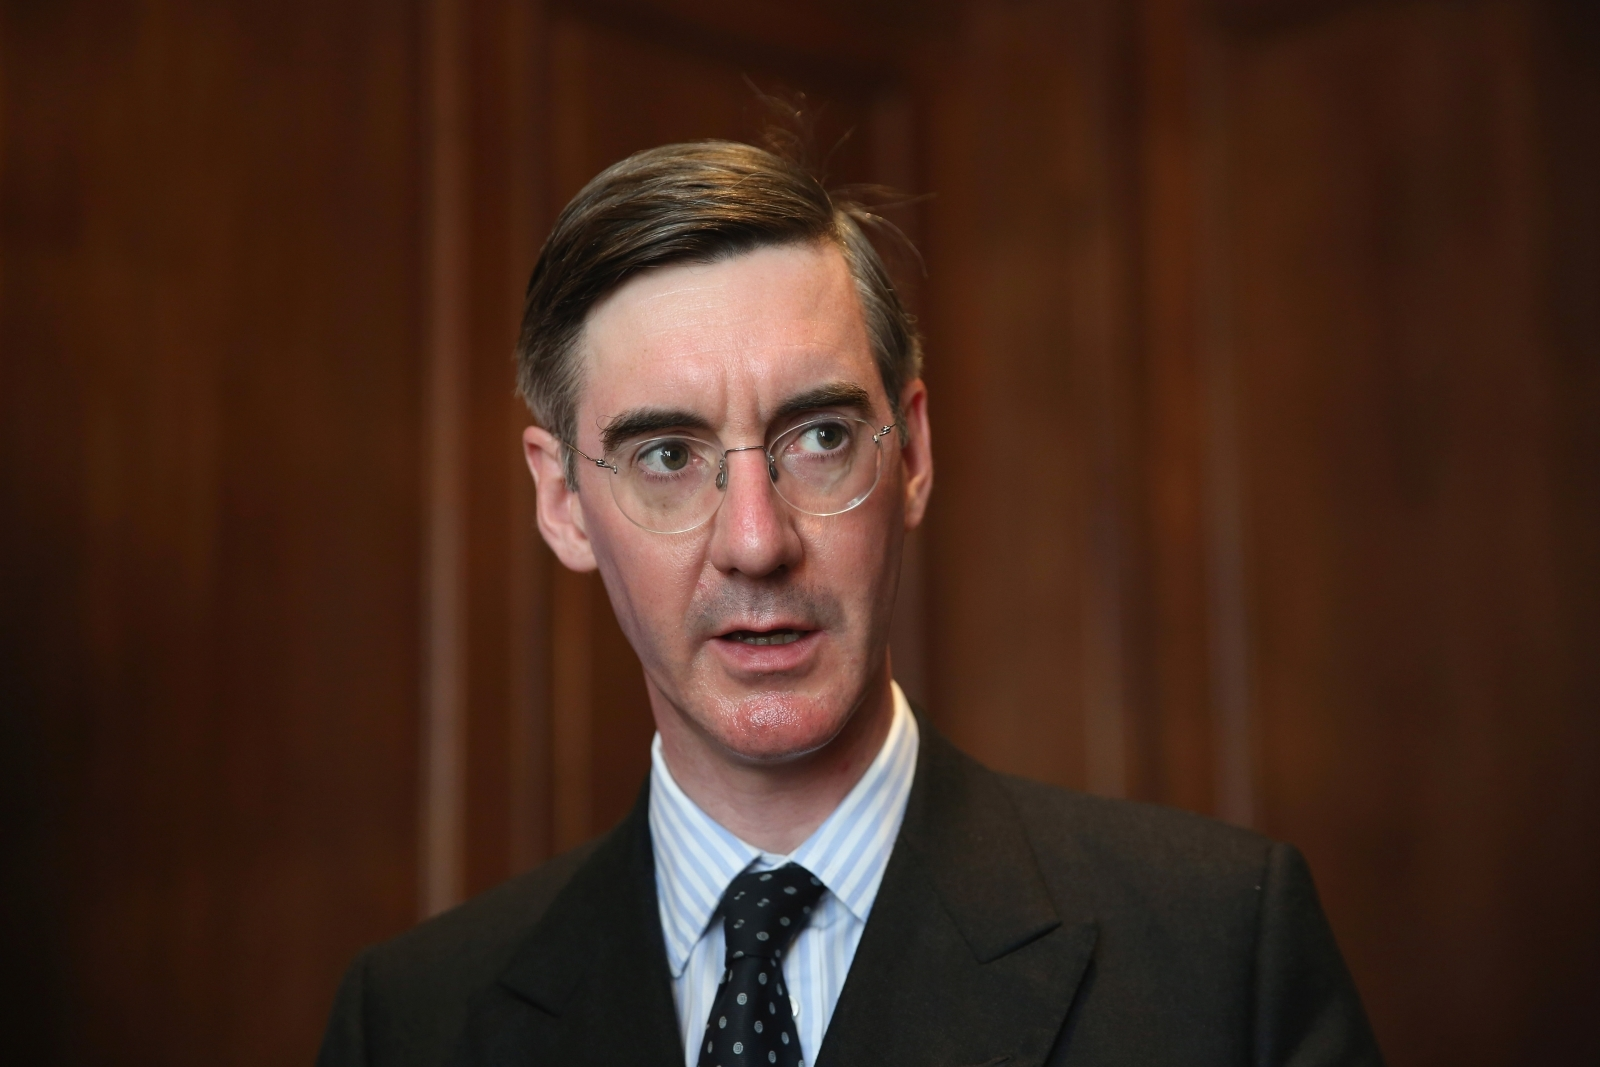 Jacob Rees-Mogg,